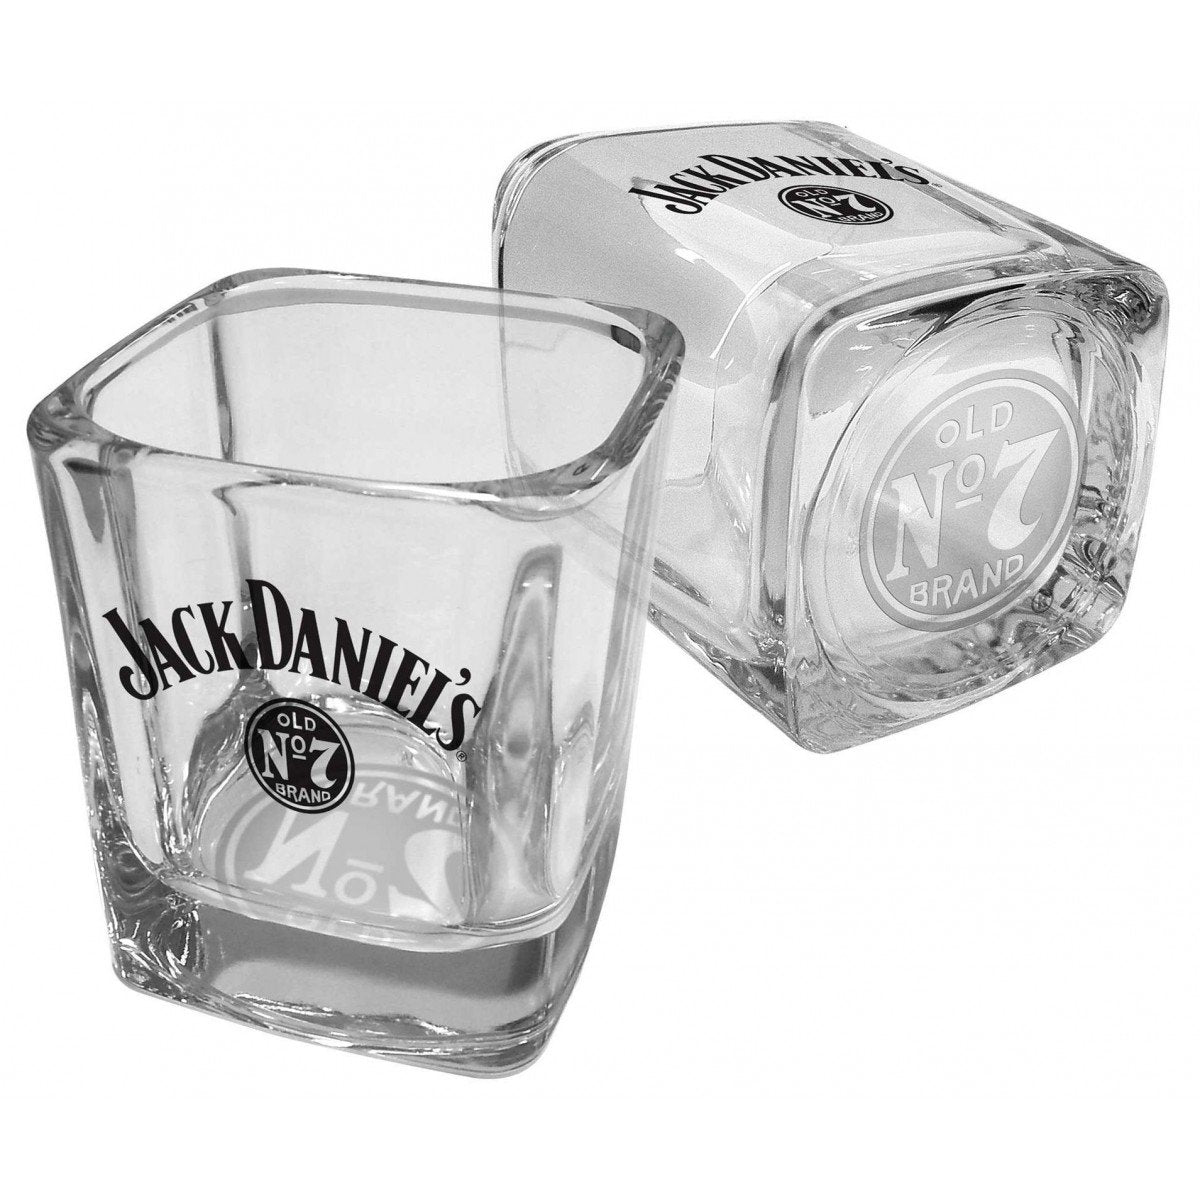 Jack Daniels - Set of 2 Square Spirit Glasses